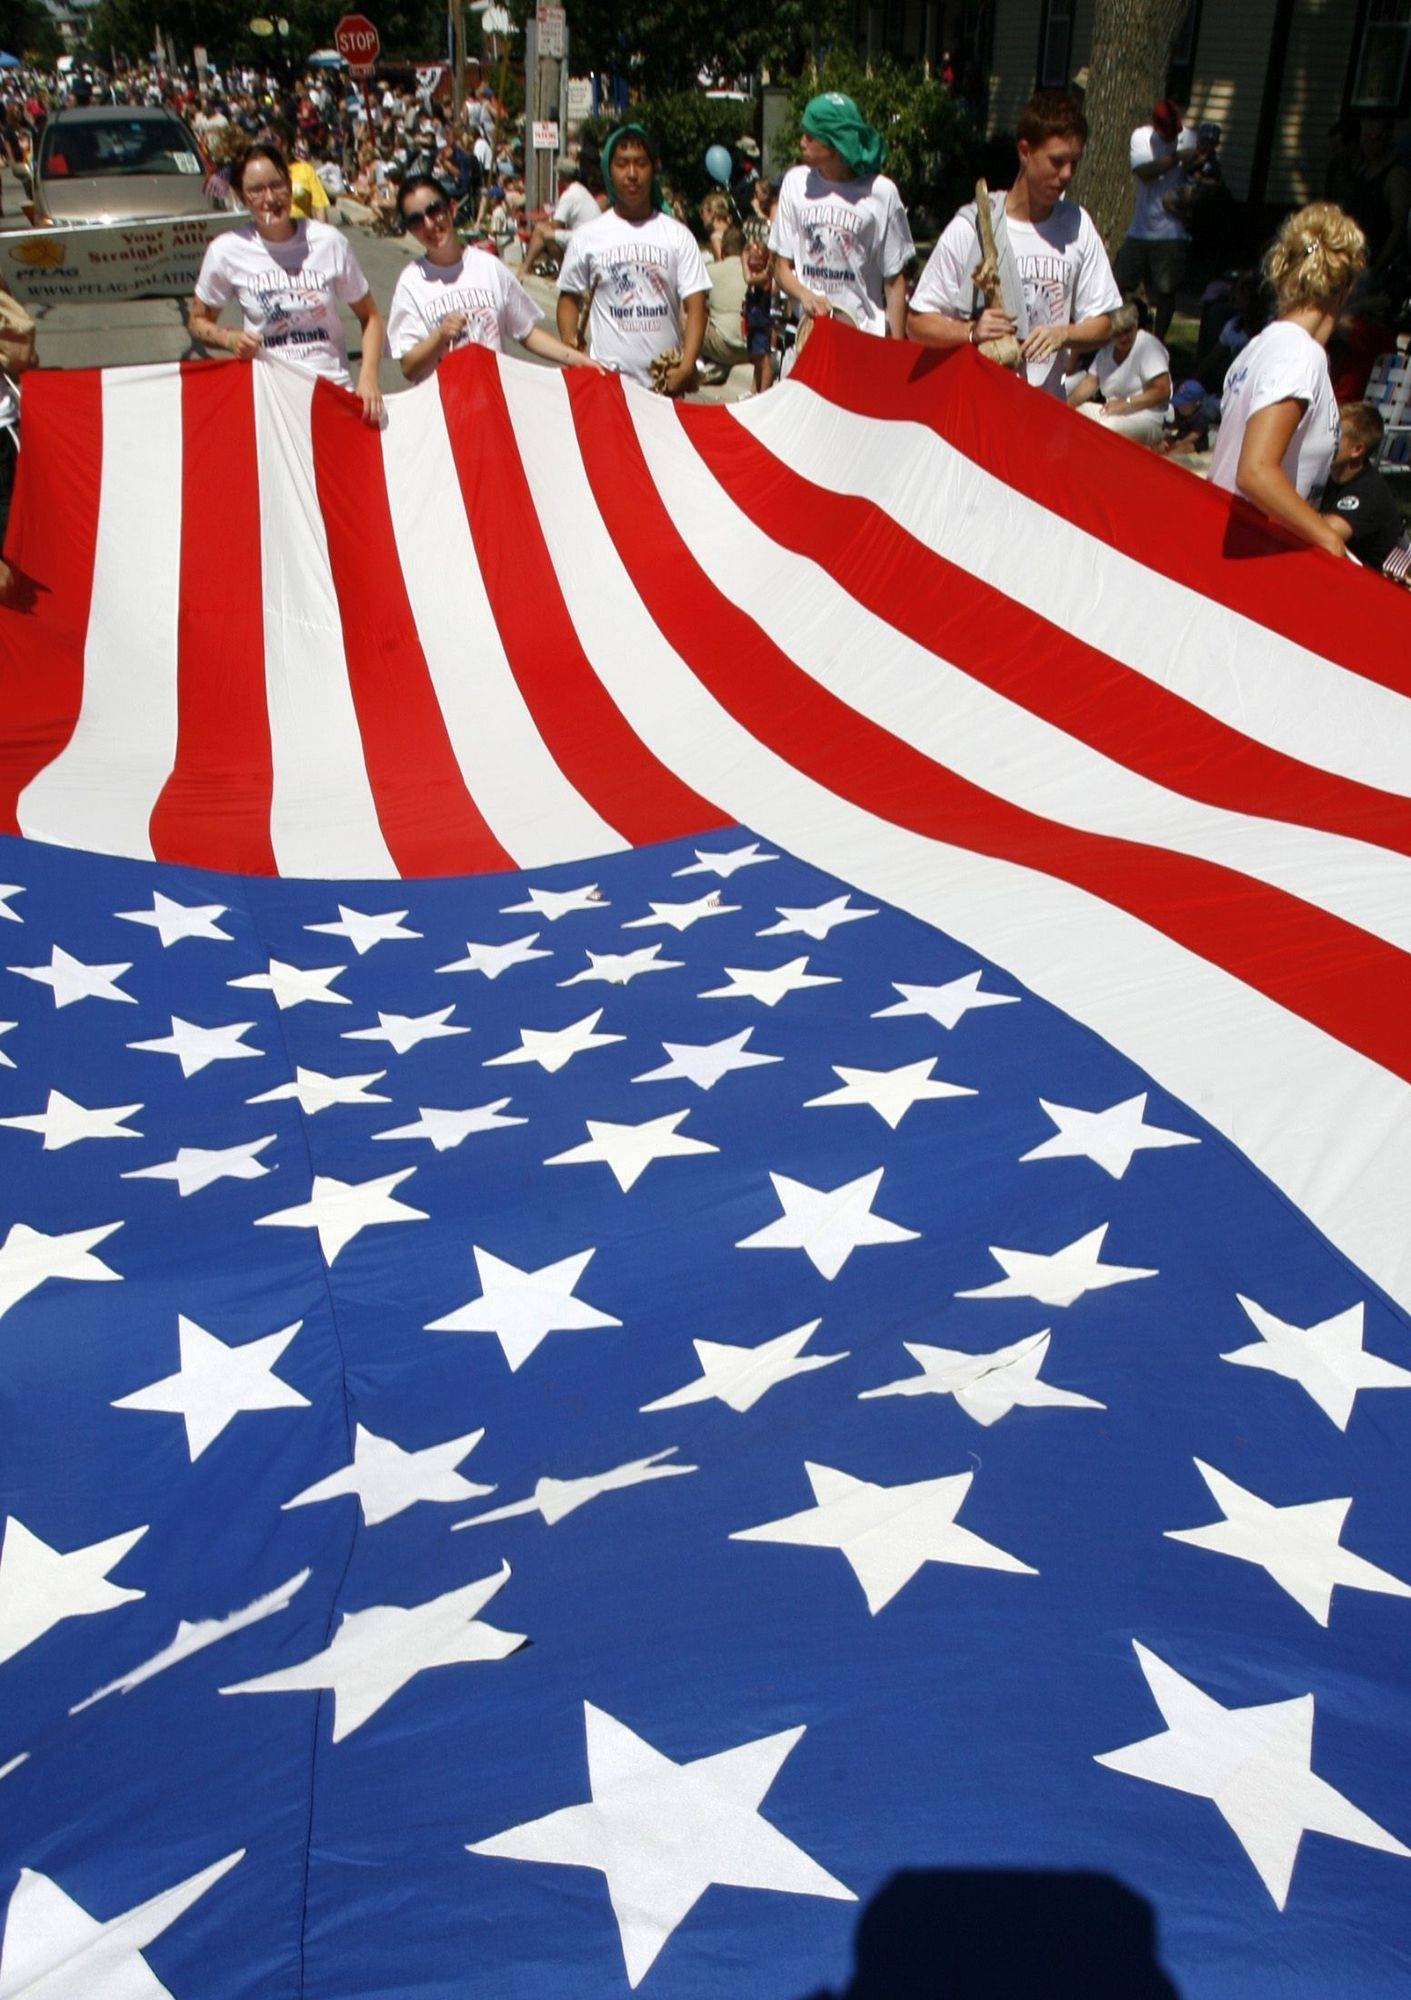 Palatine's Tiger Shark swim team carry a large American flag in Palatine's Fourth of July parade on Saturday July 3.